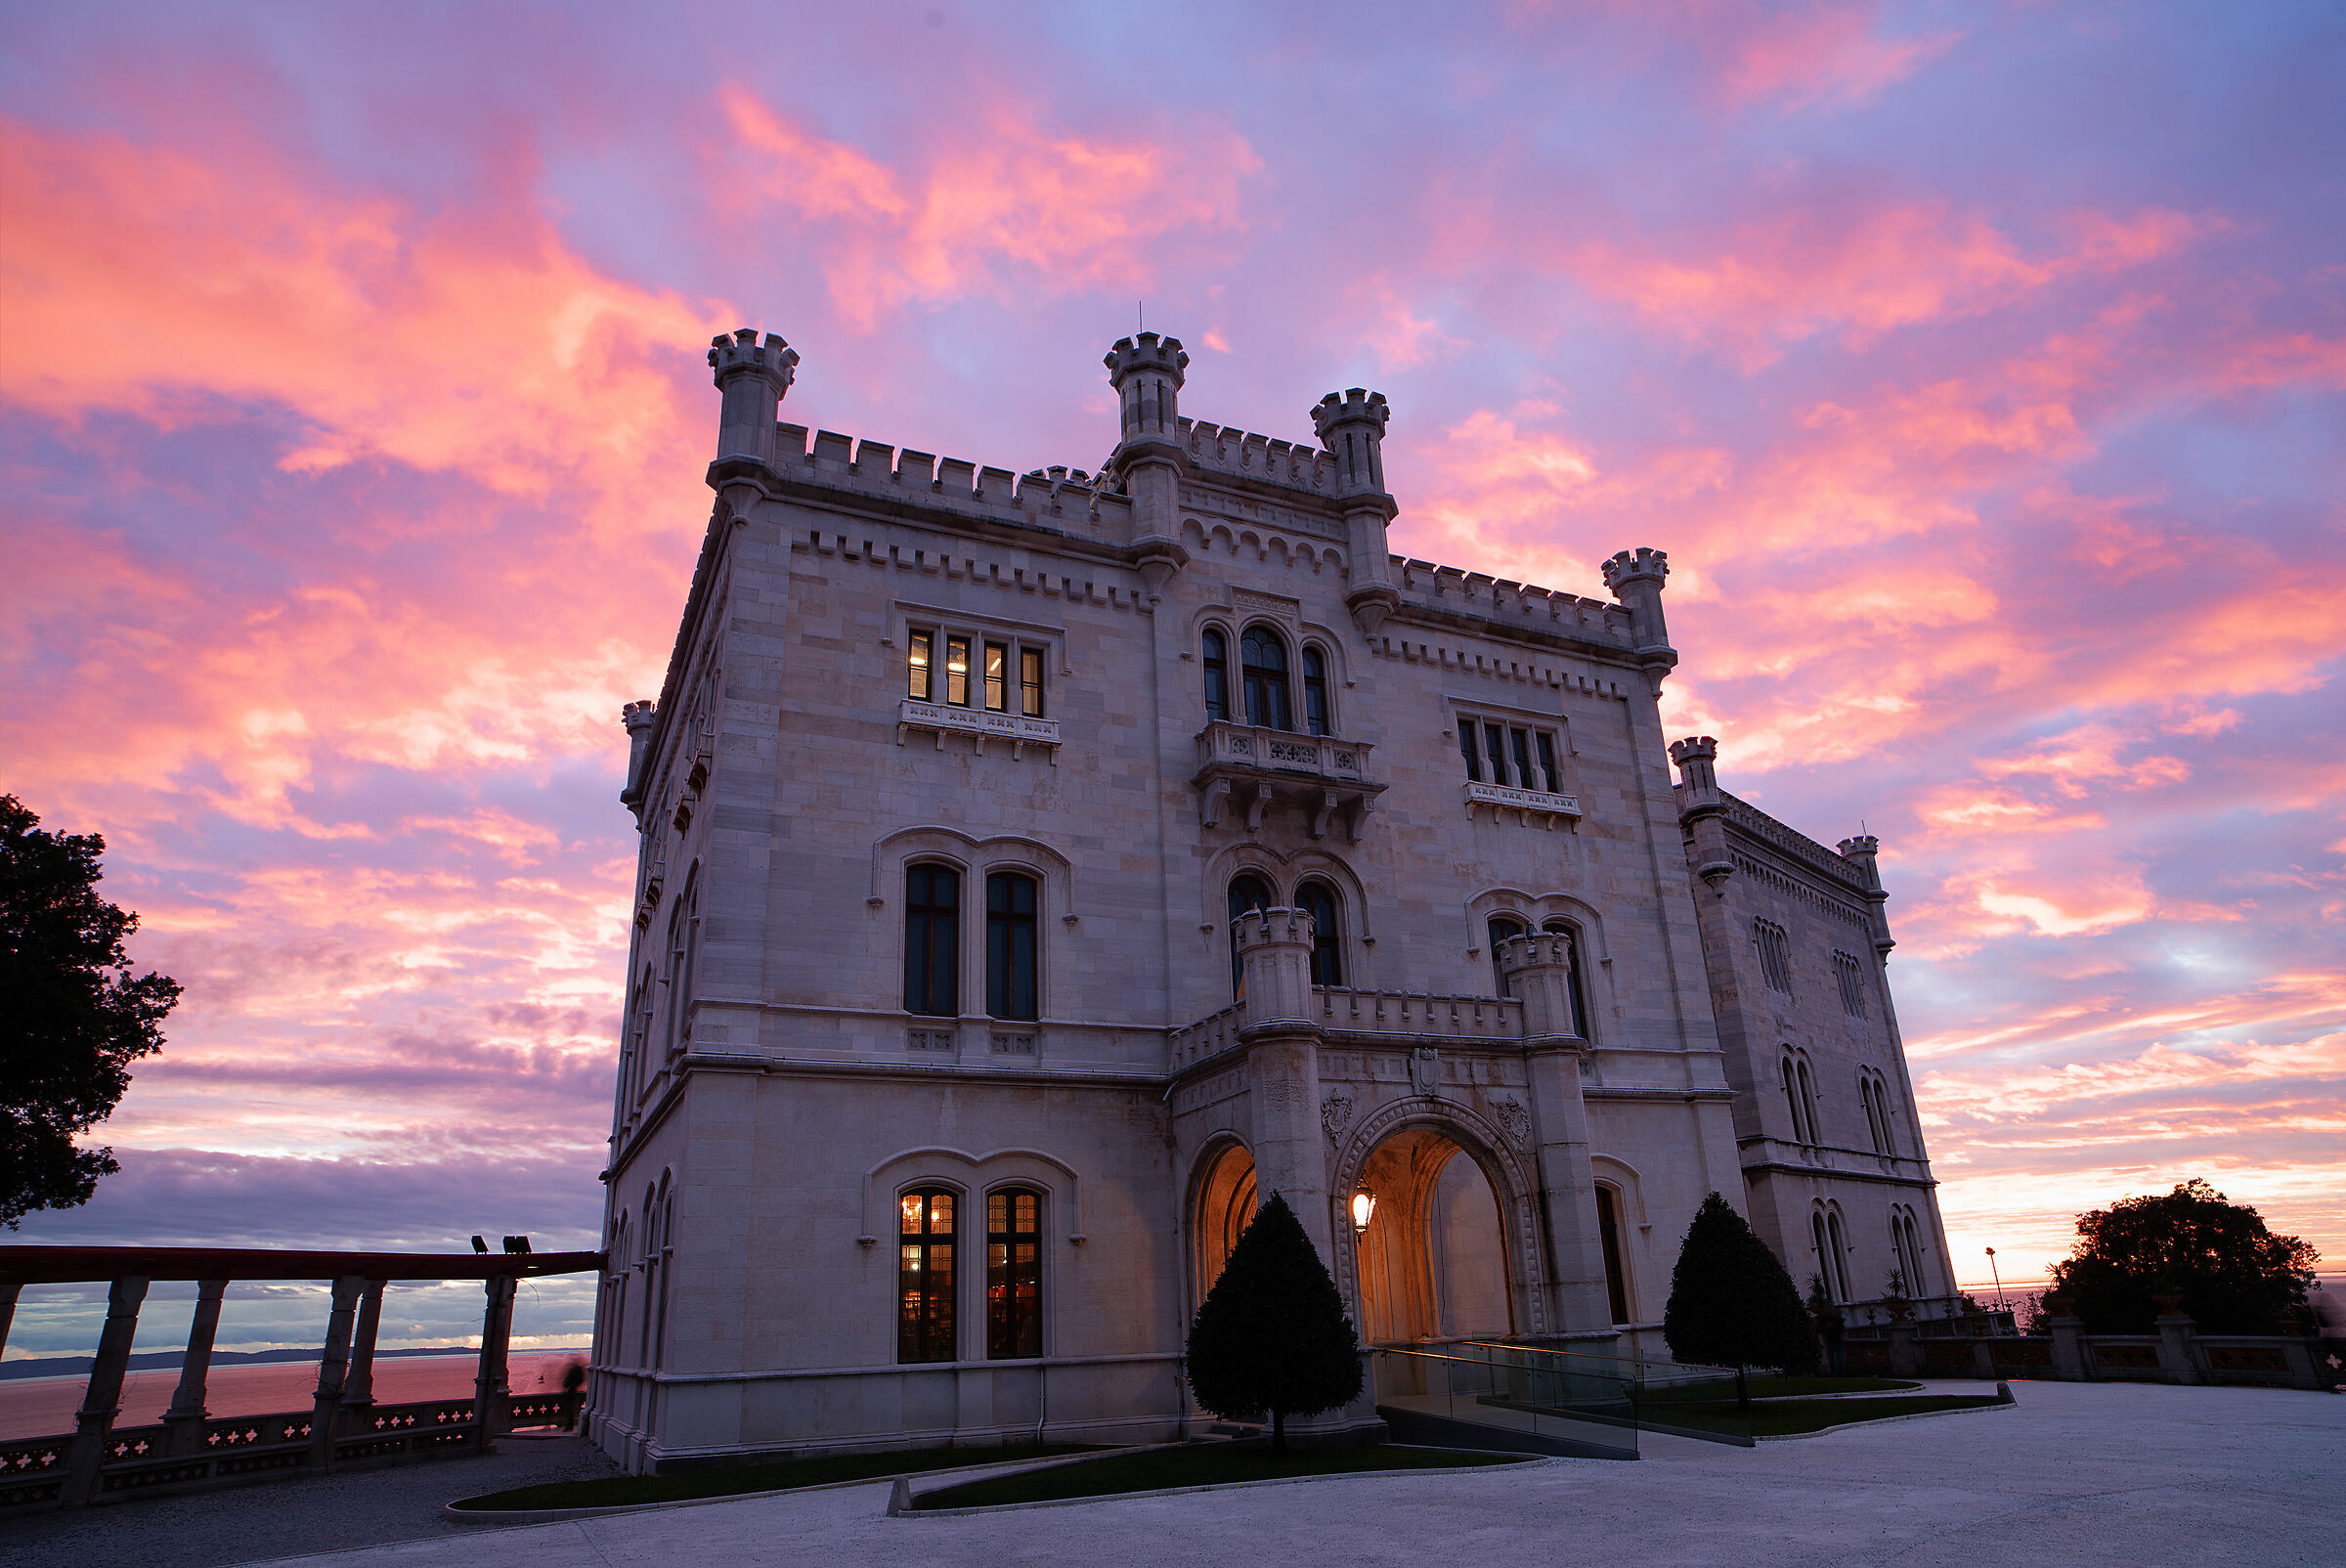 The castle of Miramare at sunset yesterday...